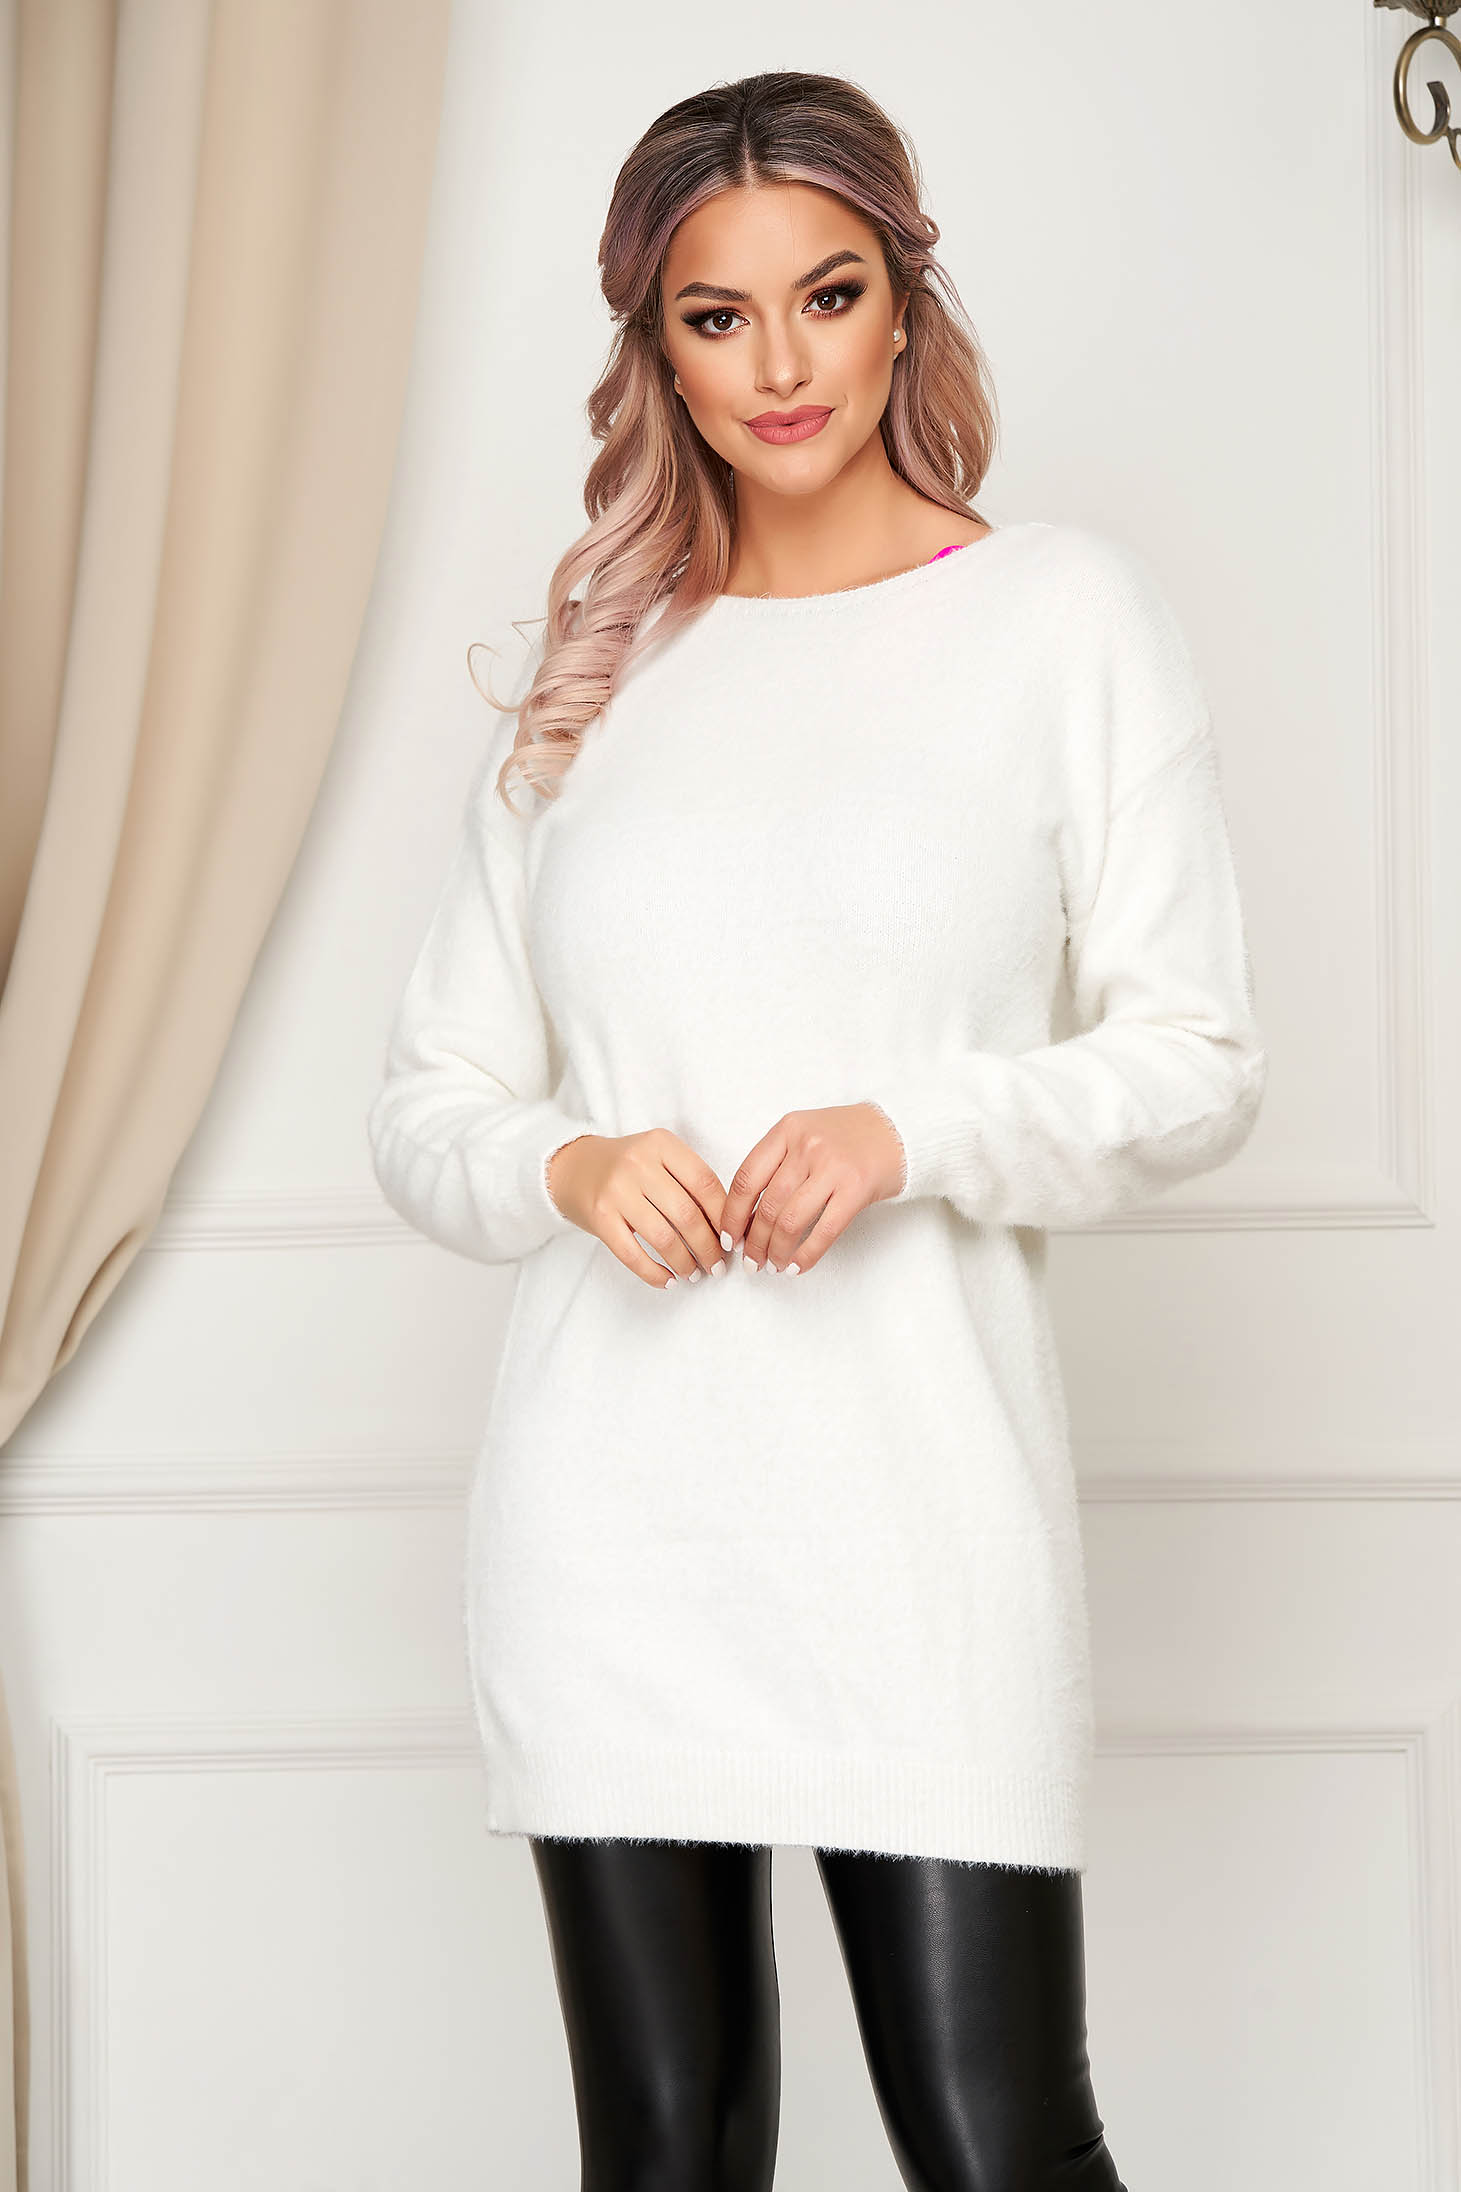 White sweater with easy cut with v-neckline with lace details knitted fabric